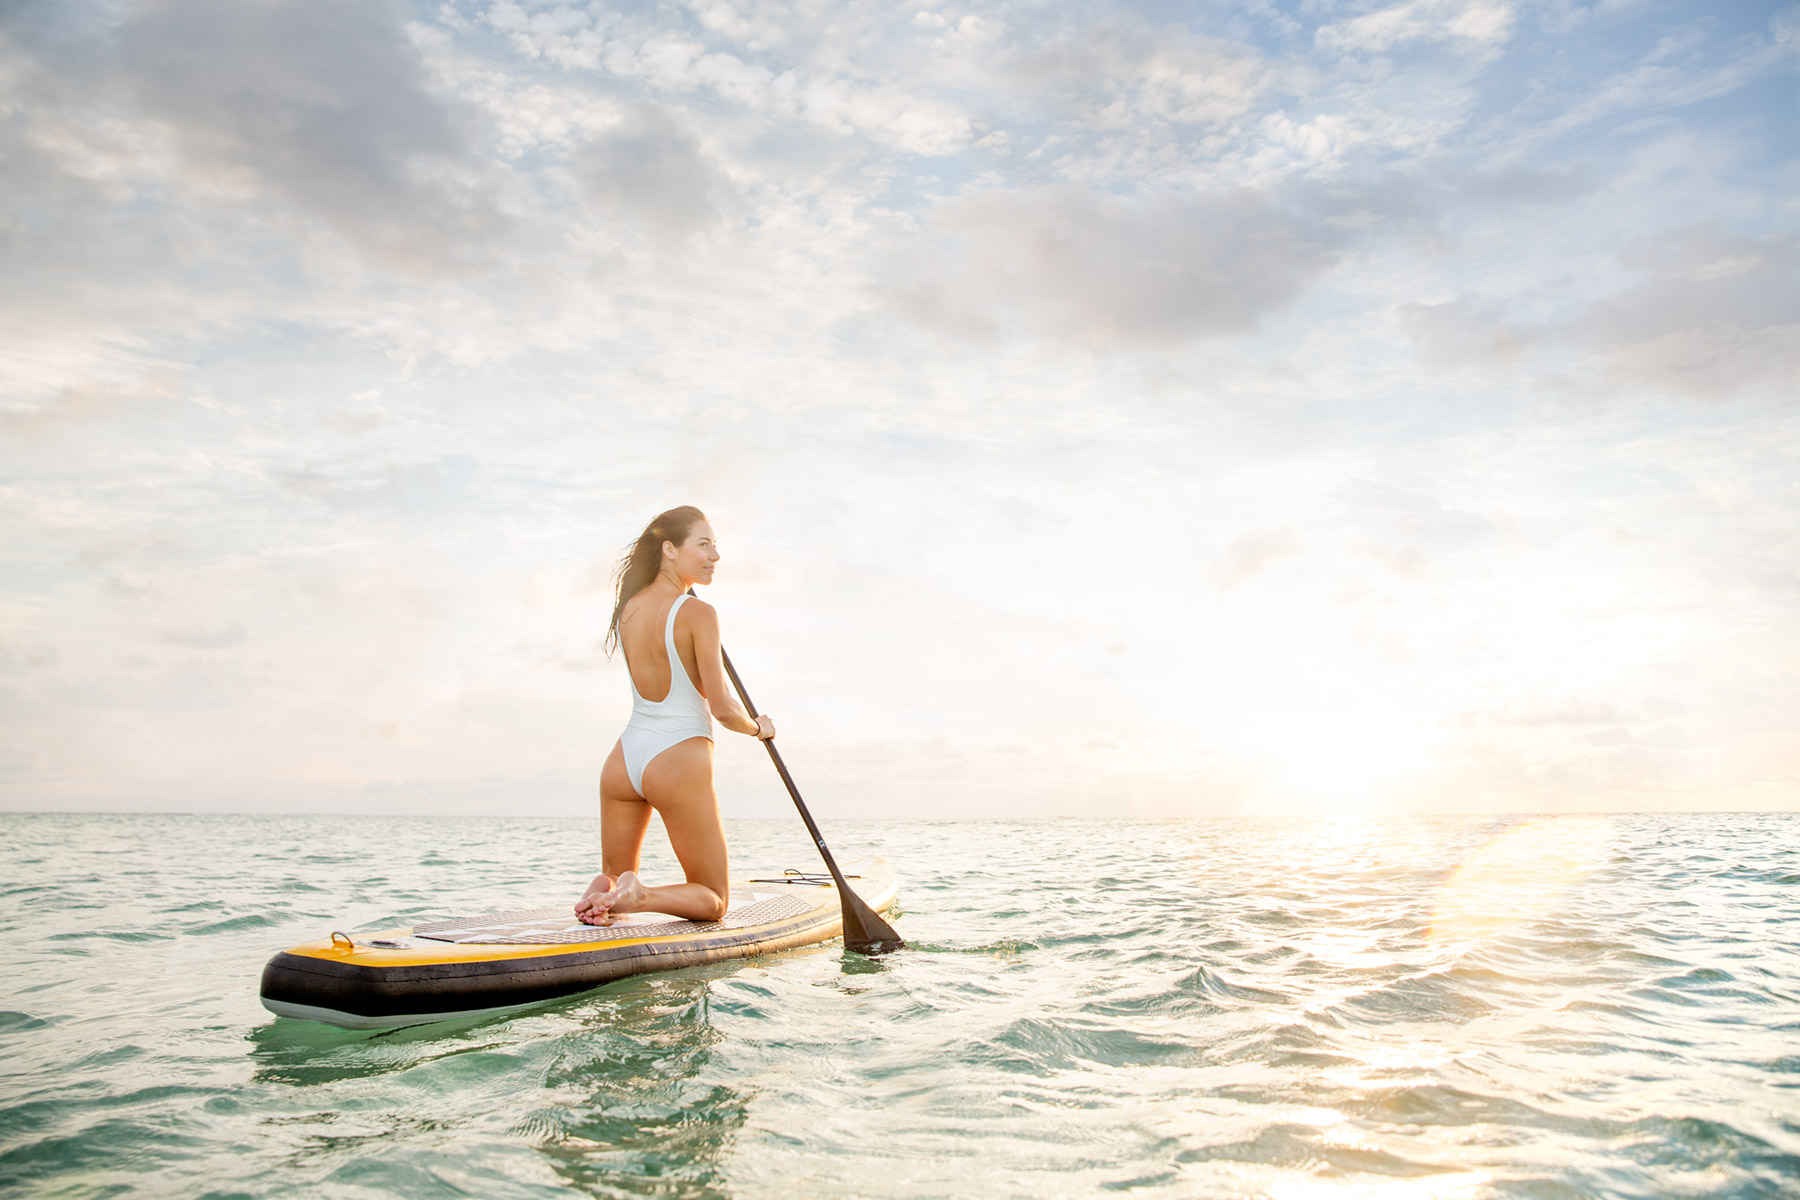 Miami_lifestyle_photographer_david_gonzalez_paddle_boarding_sunrire_portrait_advertising_fun_girl.jpg